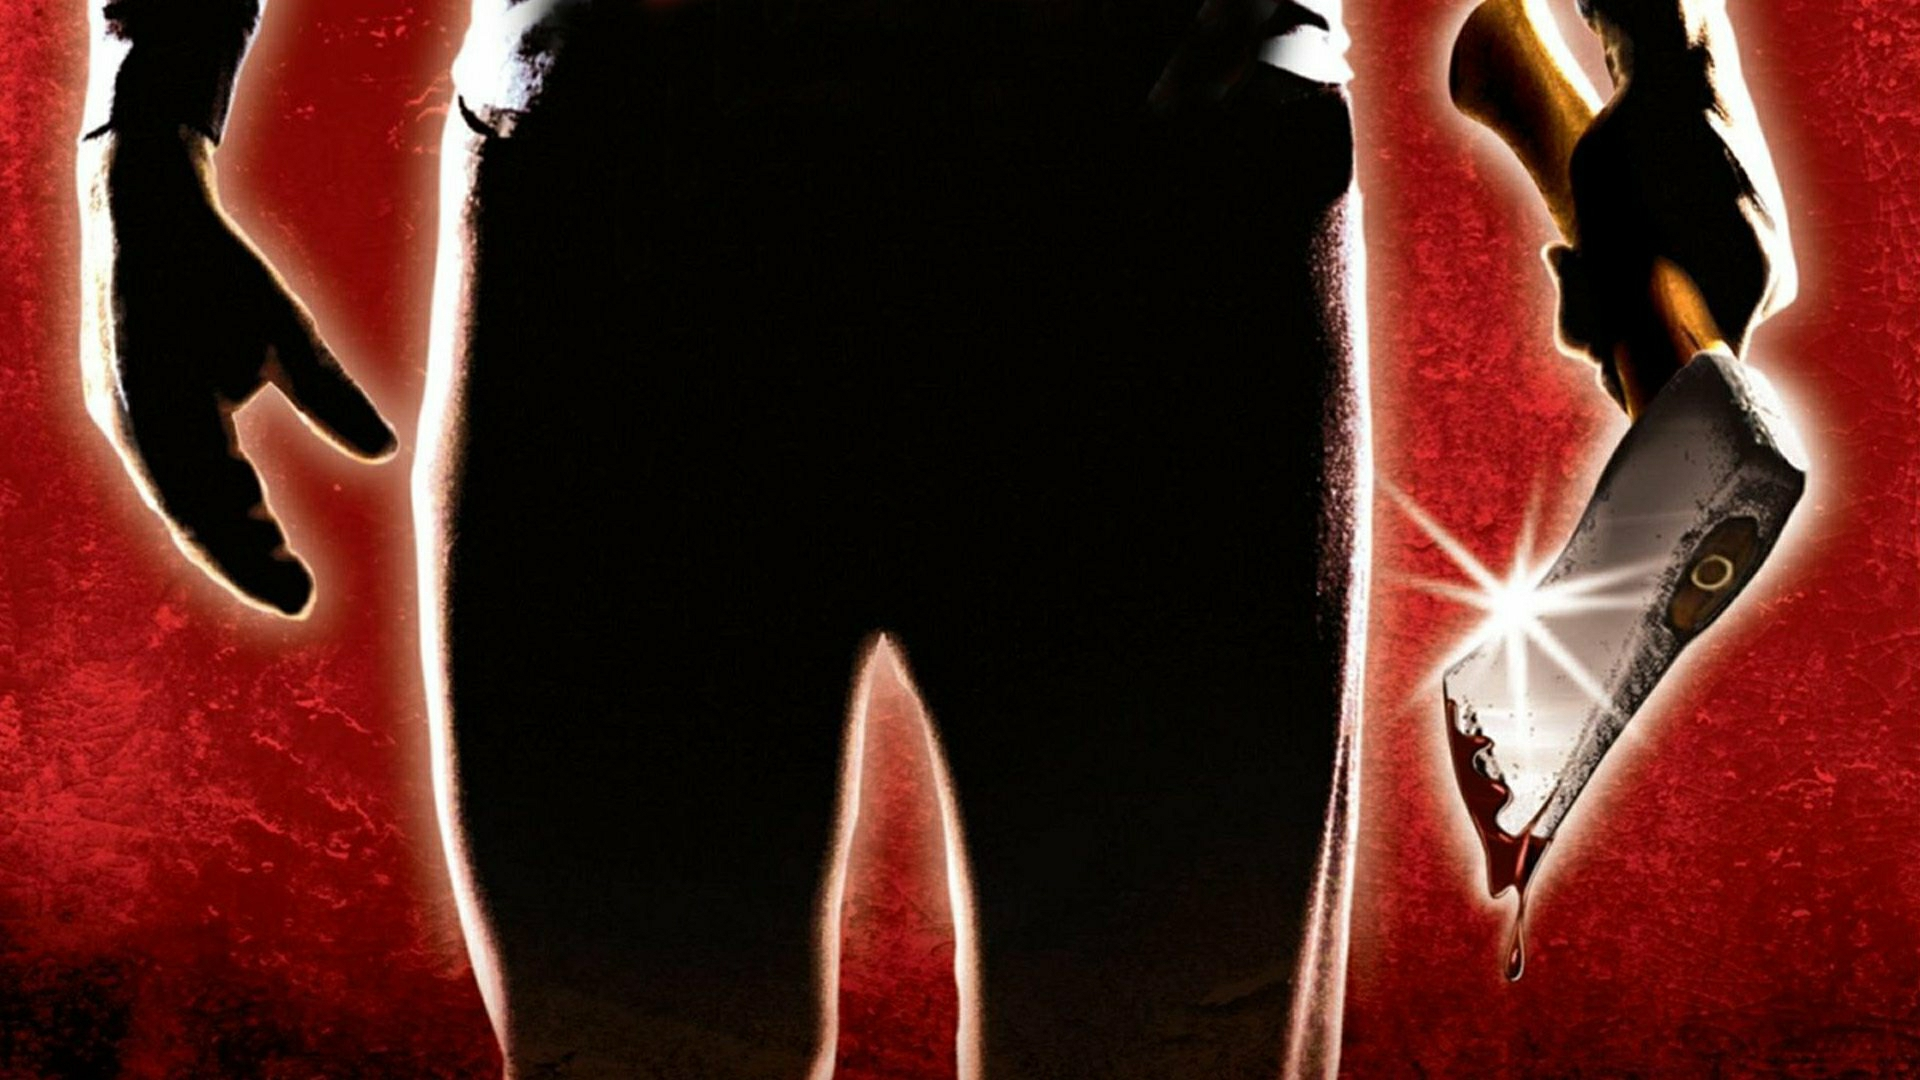 friday the 13th part 2 hd wallpaper background image 1920x1080